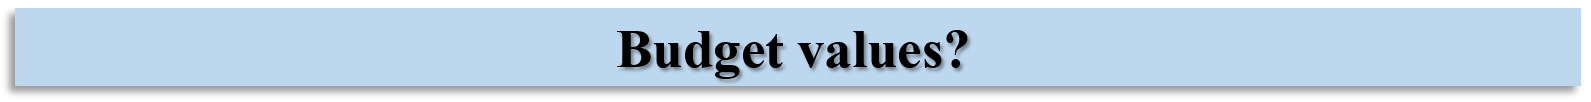 Budget values banner